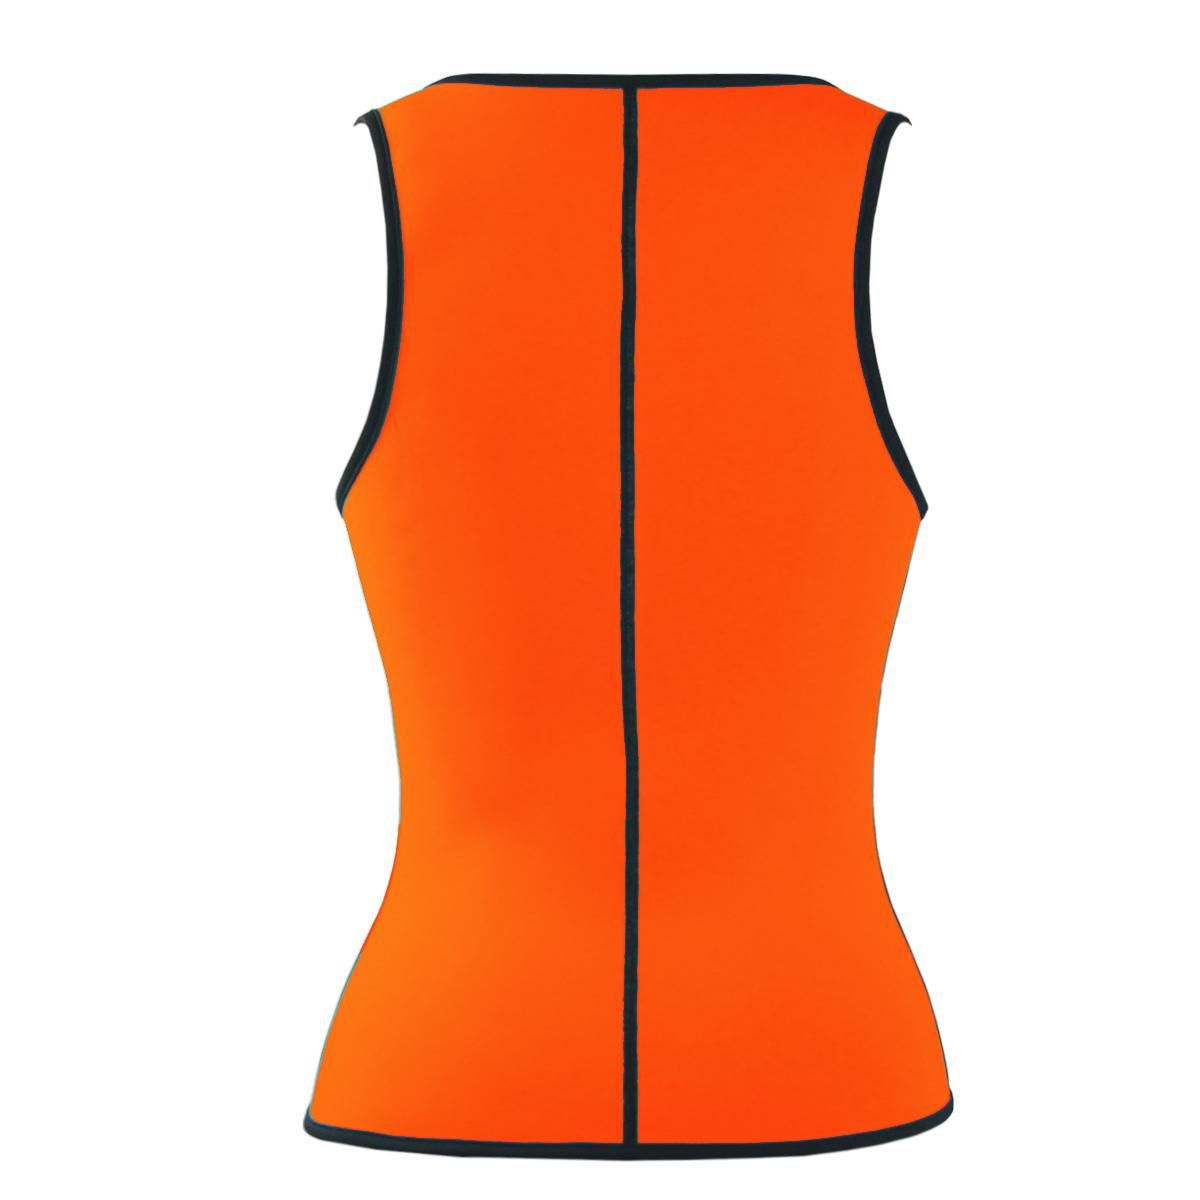 f082332d2a Online Cheap Sexy Womens Neoprene Body Shapers Workout Waist Trainer Vest  Full Support Sport Gym Fitness Slimming Waist Training Corset By Zoe1893zoe  ...